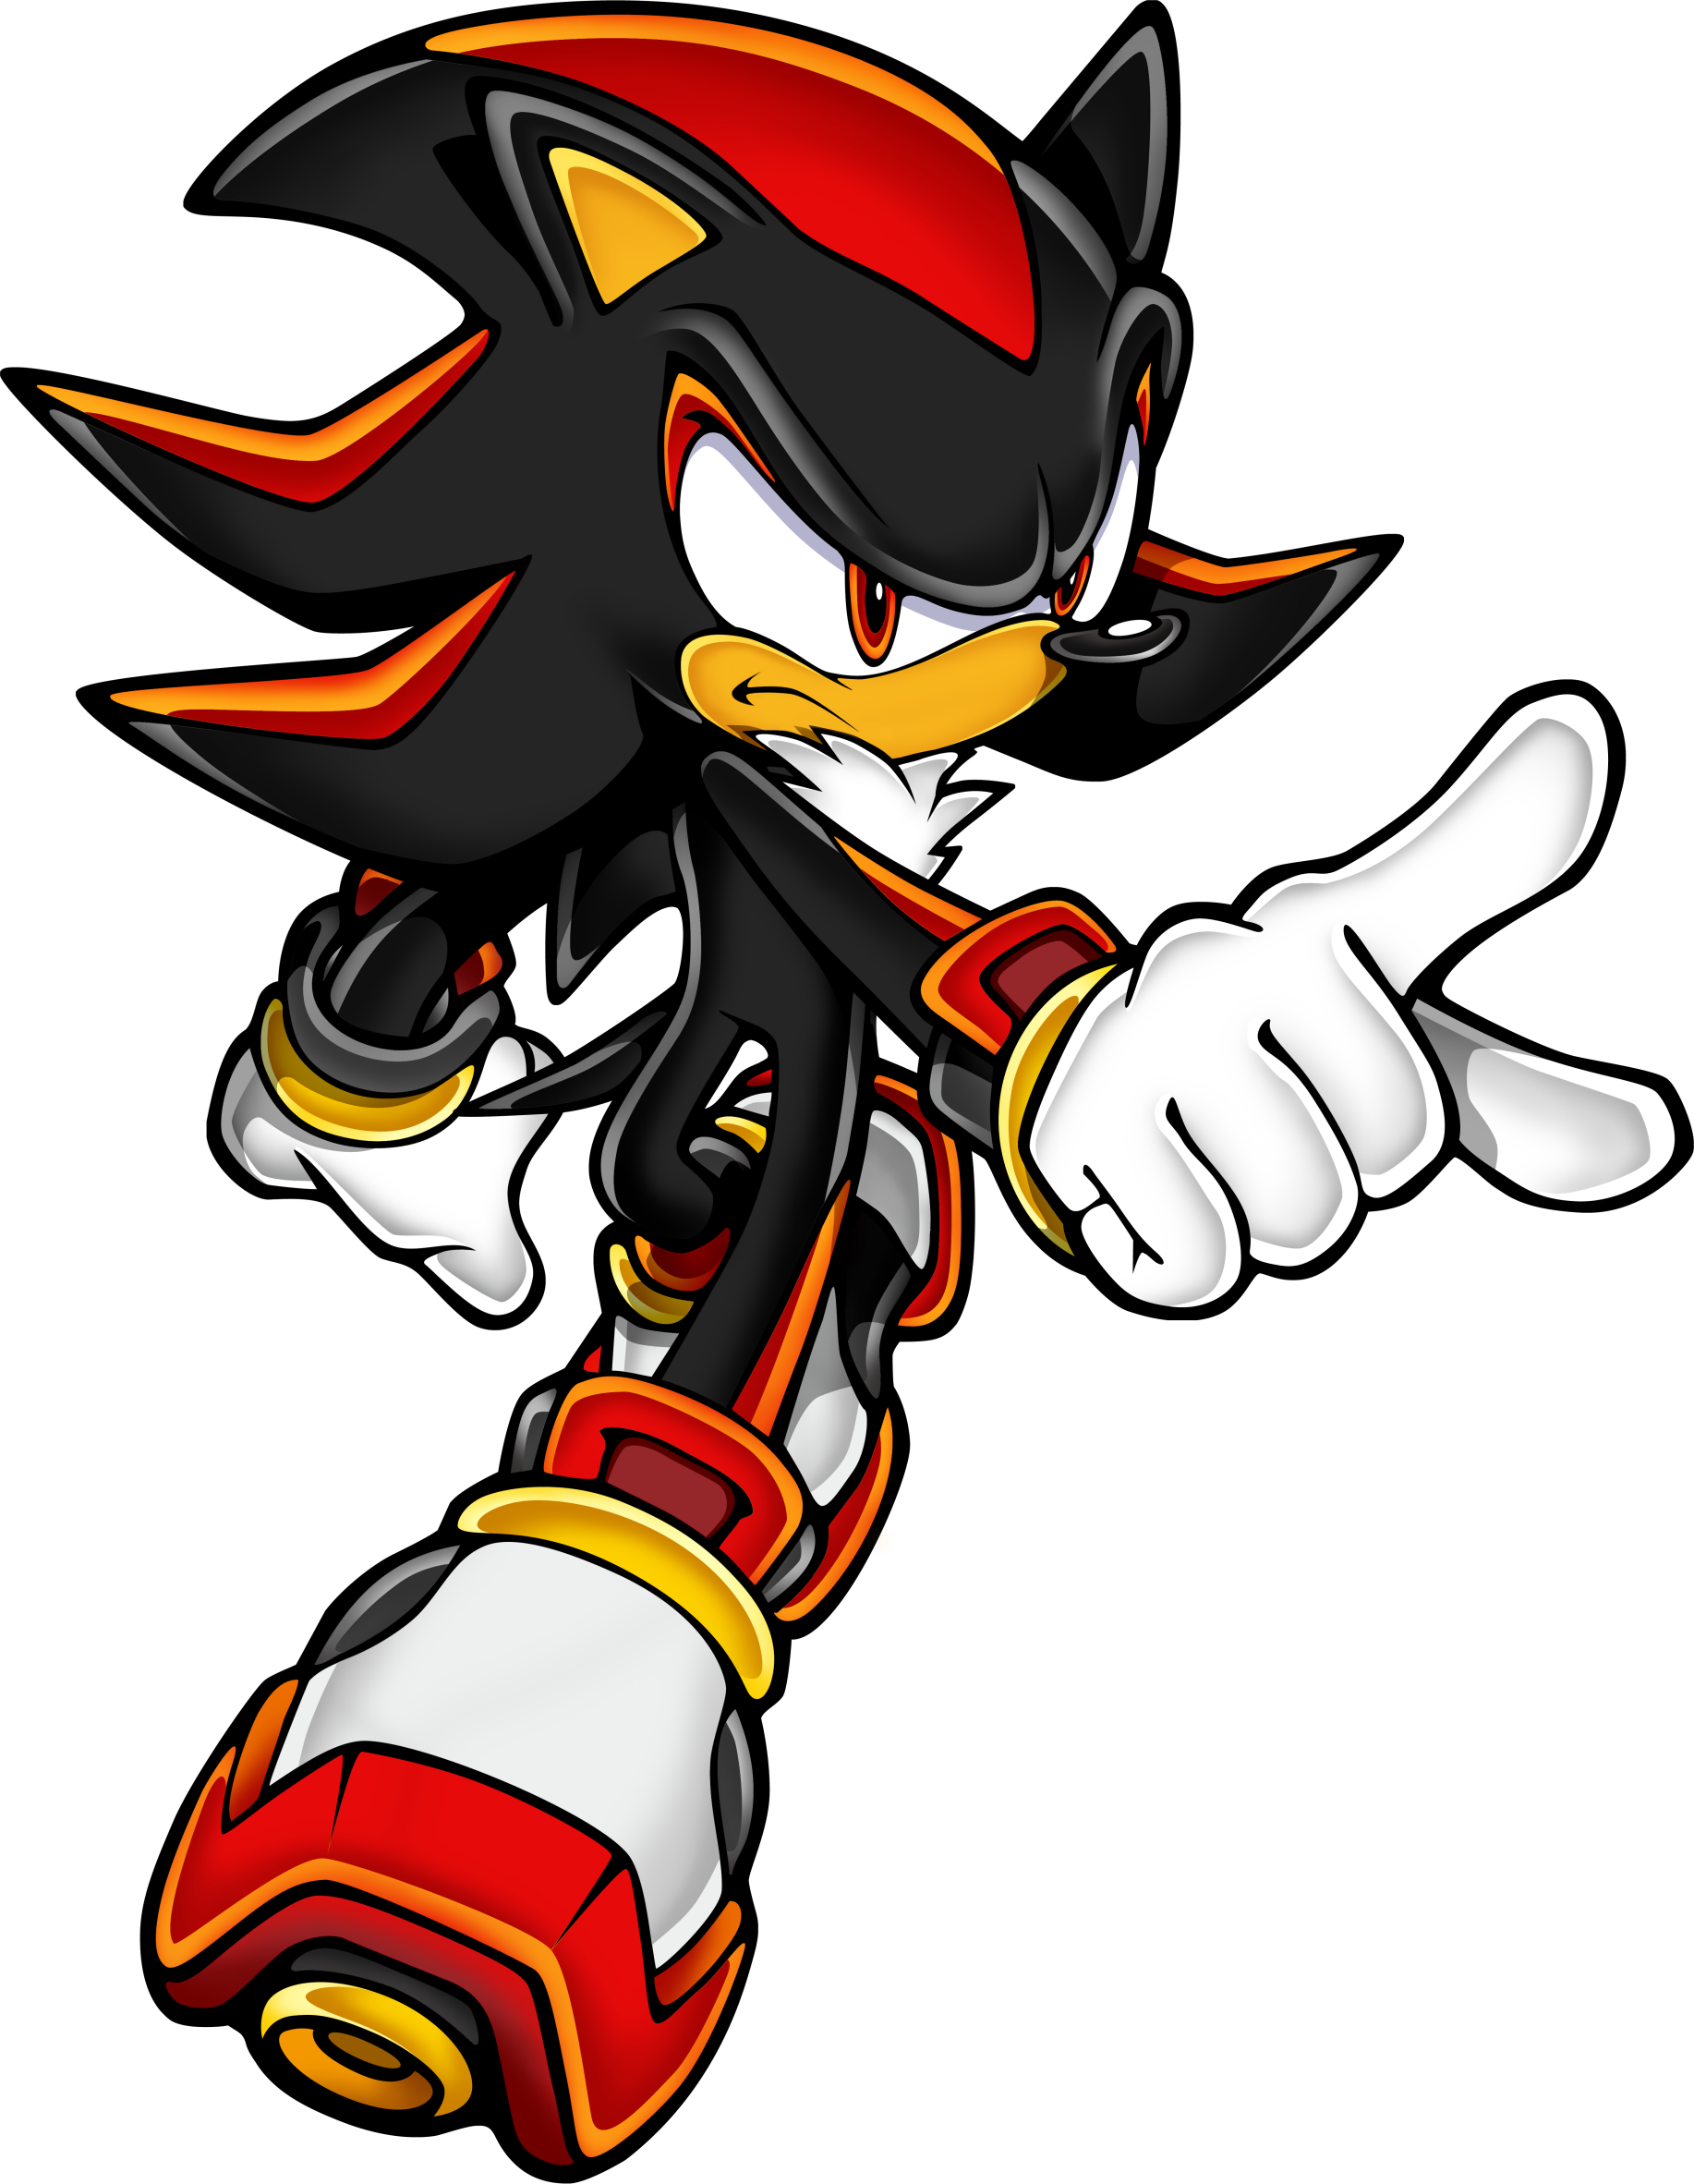 Sonic The Hedgehog Clipart Clip Art Sonic The Hedgehog Black Png Download Full Size Clipart 231068 Pinclipart